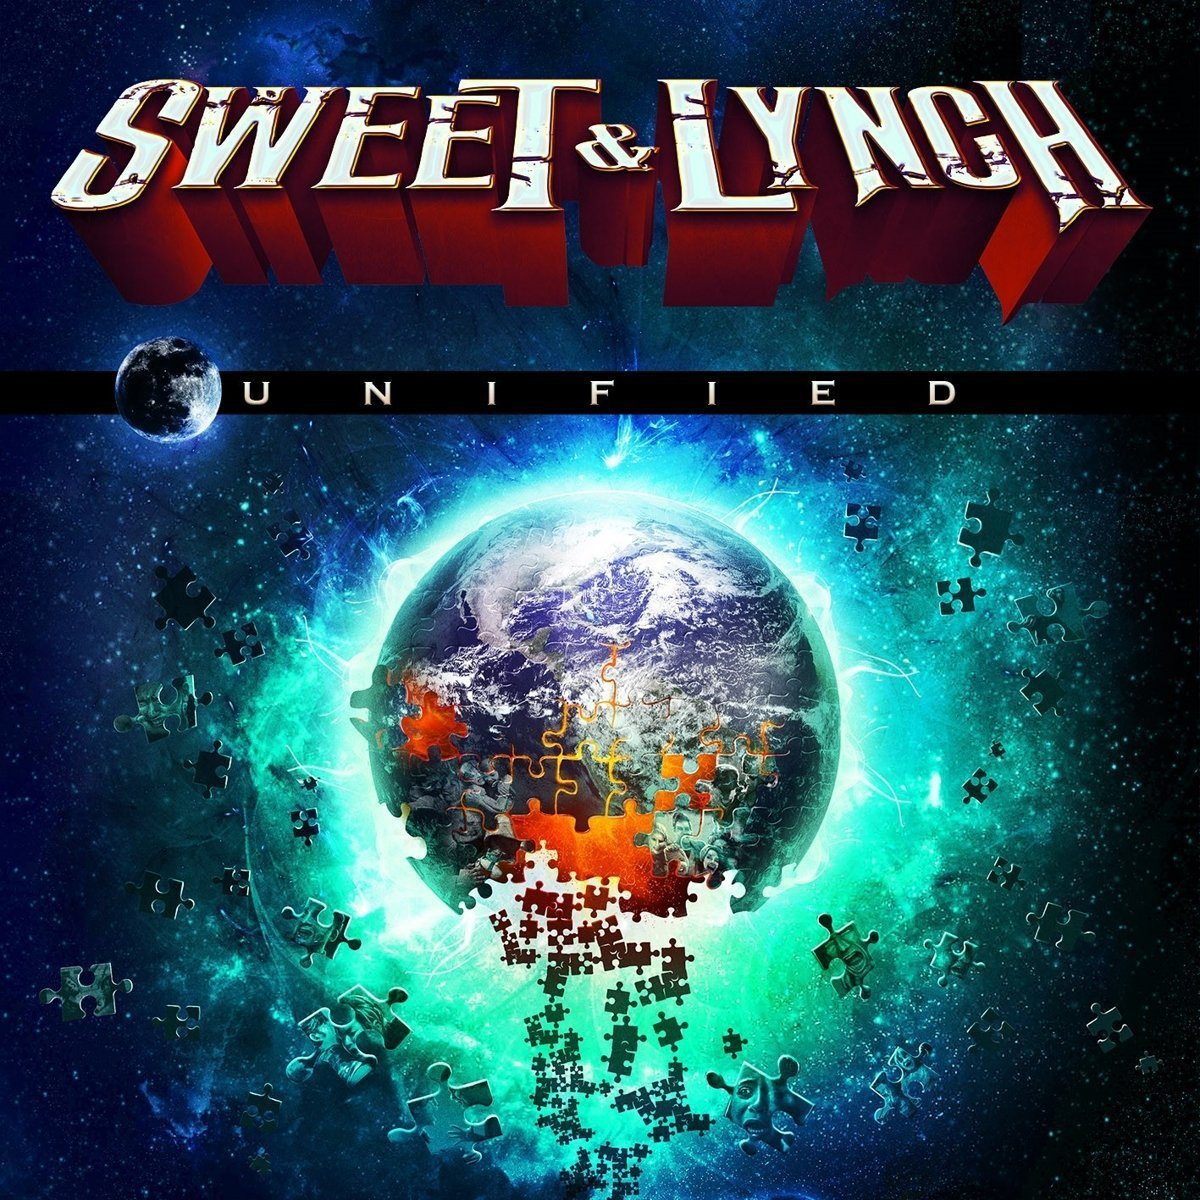 Vinilo : Sweet & Lynch - Unified (Limited Edition, Gatefold LP Jacket, Black, 2 Disc)